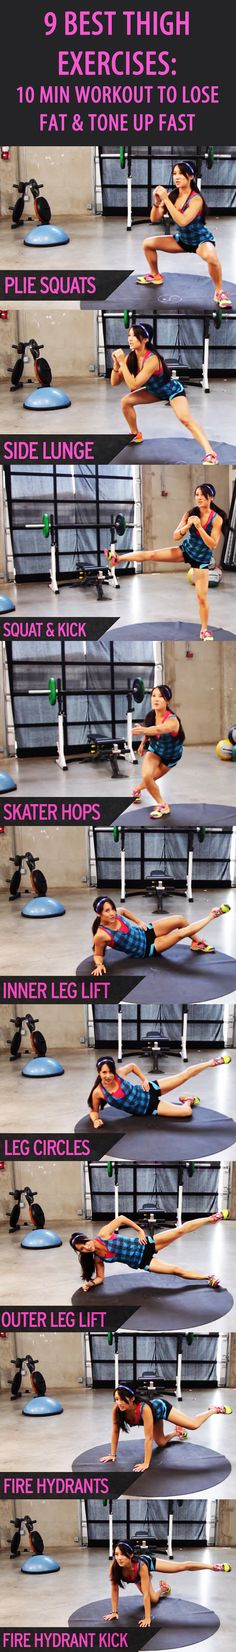 9 Best Thigh Exercises: Our favorite fitness trainer Kelsey Lee shows you how to Get Thinner Thighs in Just Over Ten Minutes. Tone your quads and hamstrings and get rid of some pesky fat on your thighs Easy Workouts, At Home Workouts, Body Fitness, Health Fitness, Workout Fitness, Health Diet, Entrainement Running, Best Thigh Exercises, Thigh Workouts